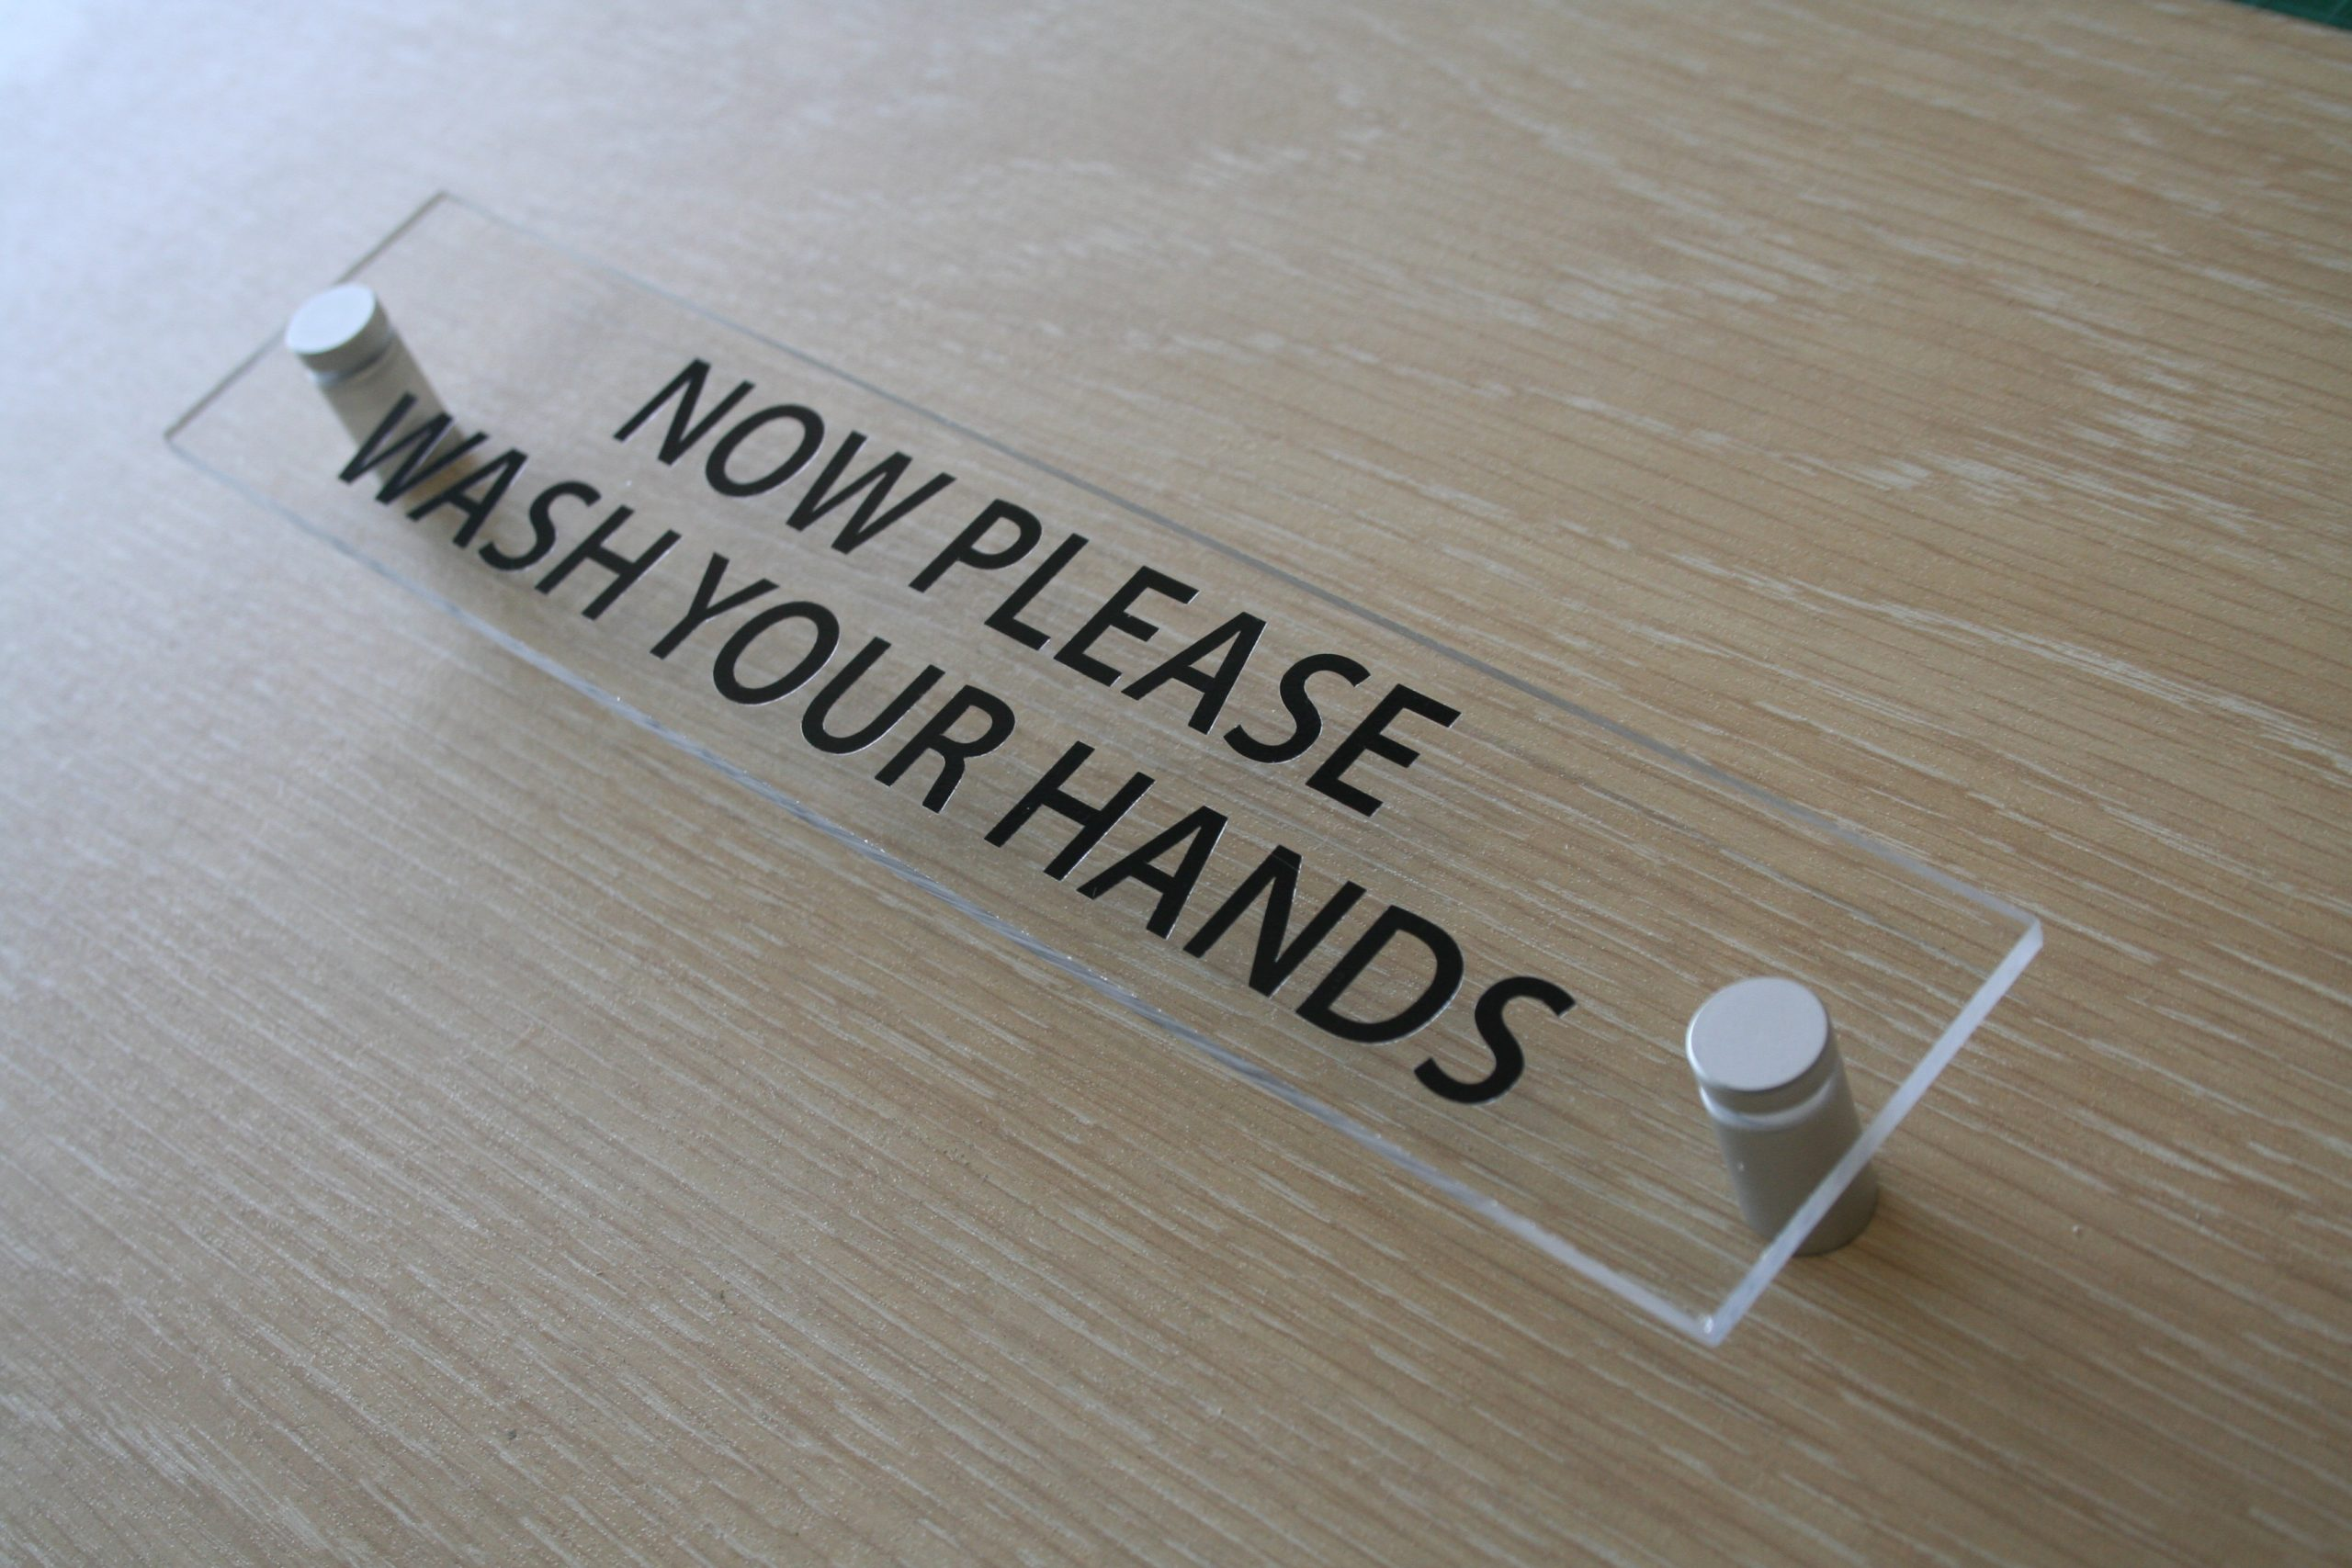 WASH HANDS TOILET DOOR WALL SIGN